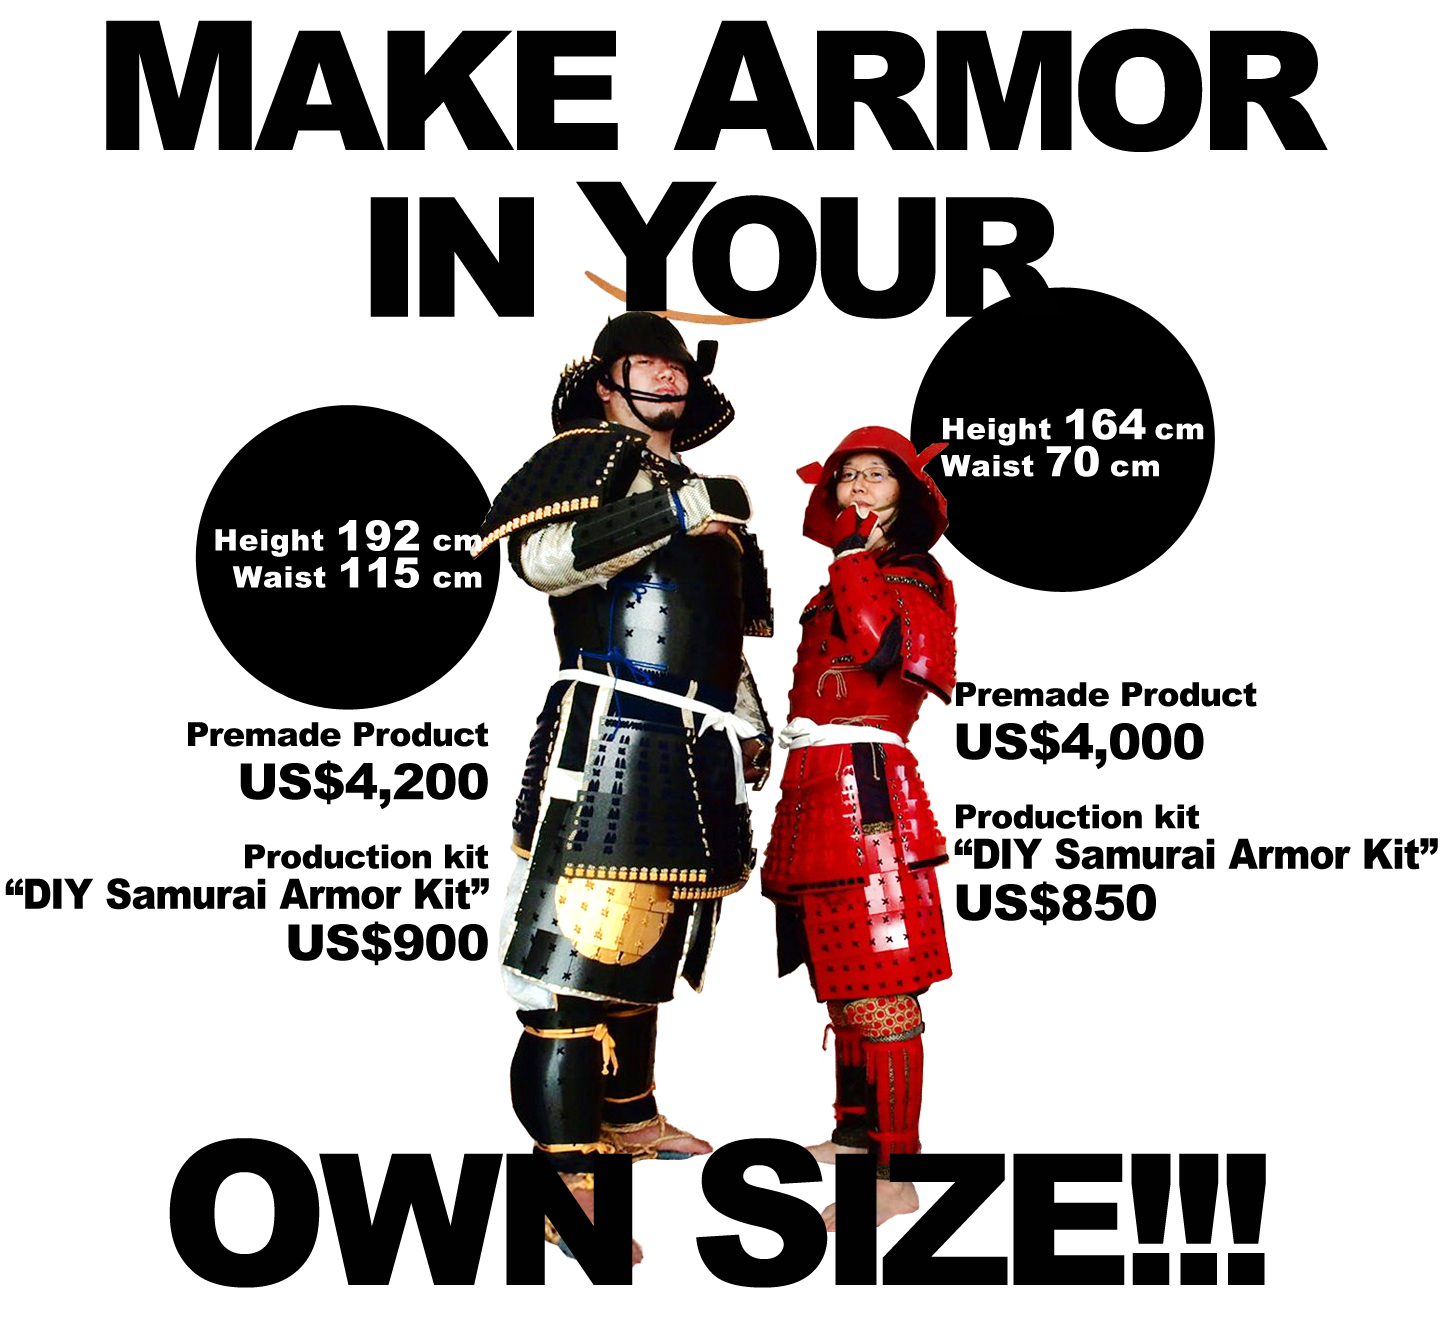 make armor in your own size